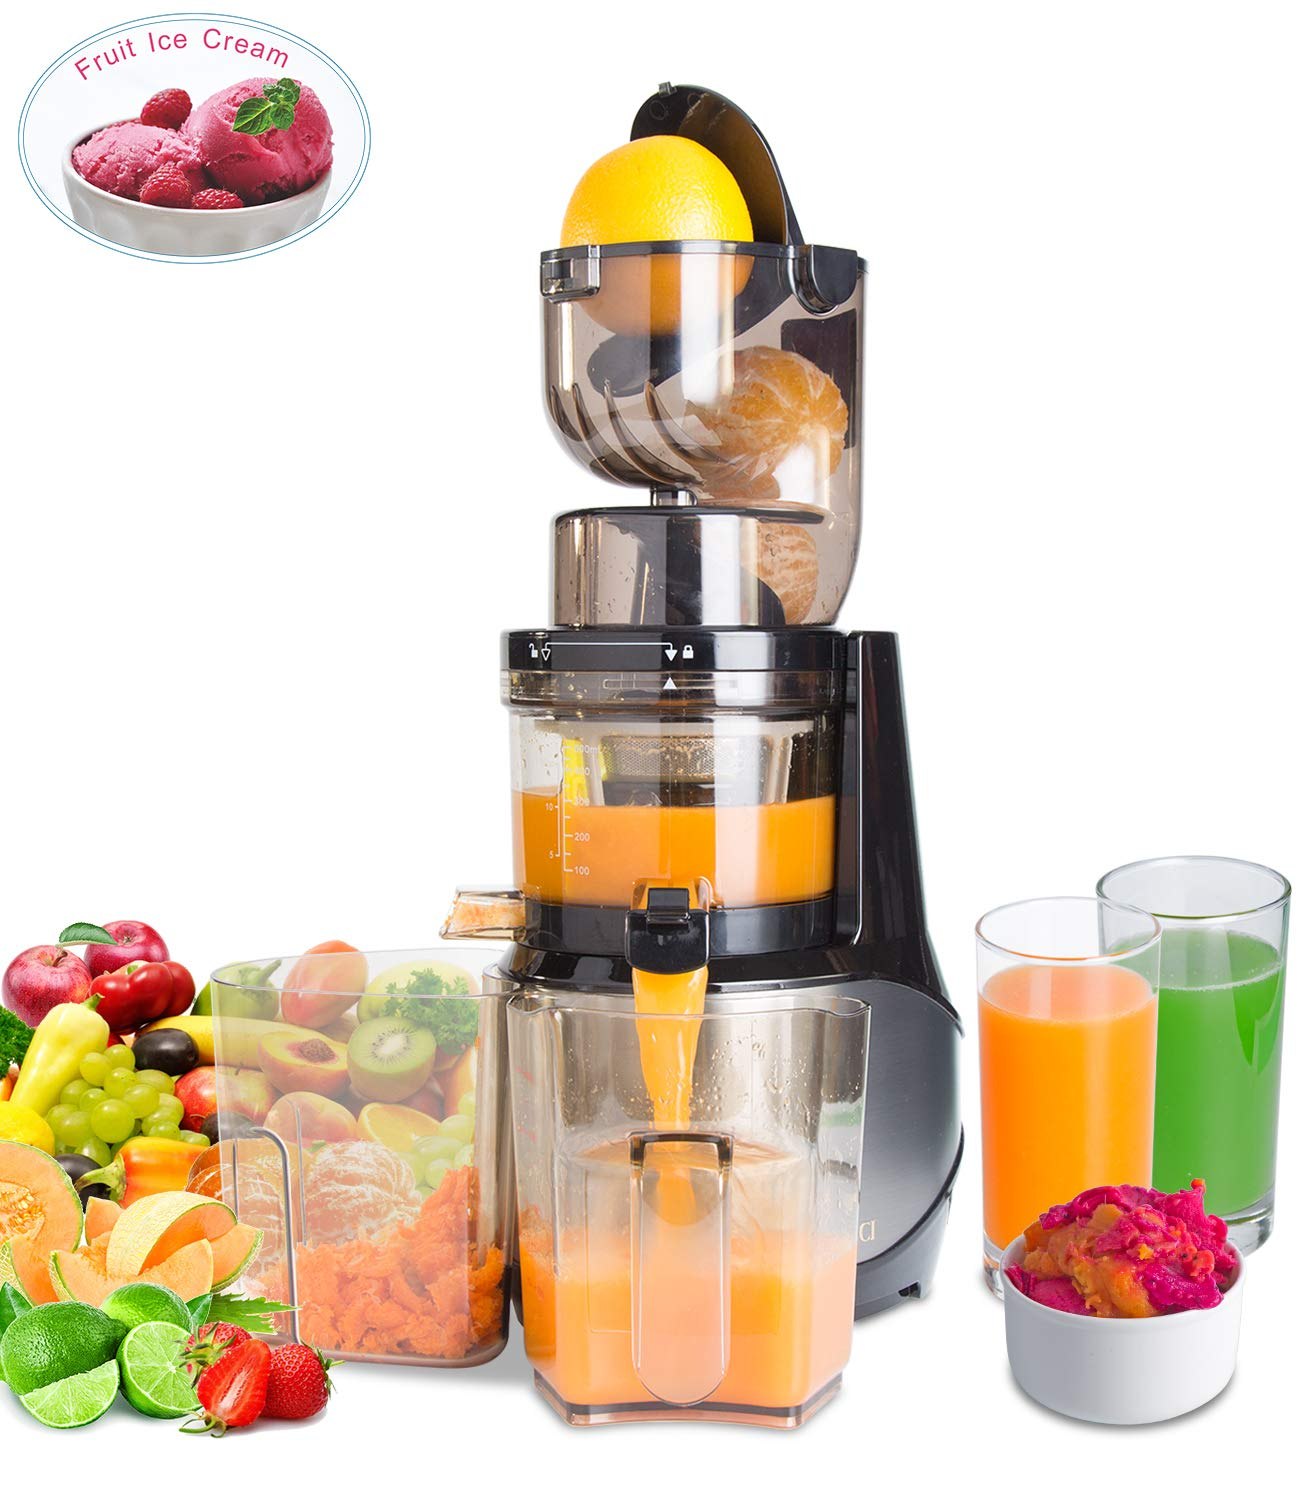 Masticating Juicer,Whole Slow Juicer Extractor by Vitalisci,Cold Press Juicer Machine,Anti-Oxidation for Fruit and Vegetable,Easy to Clean and BPA Free,(300W AC Motor/3.15'' Wide Chute/40 RPMs)-Silver